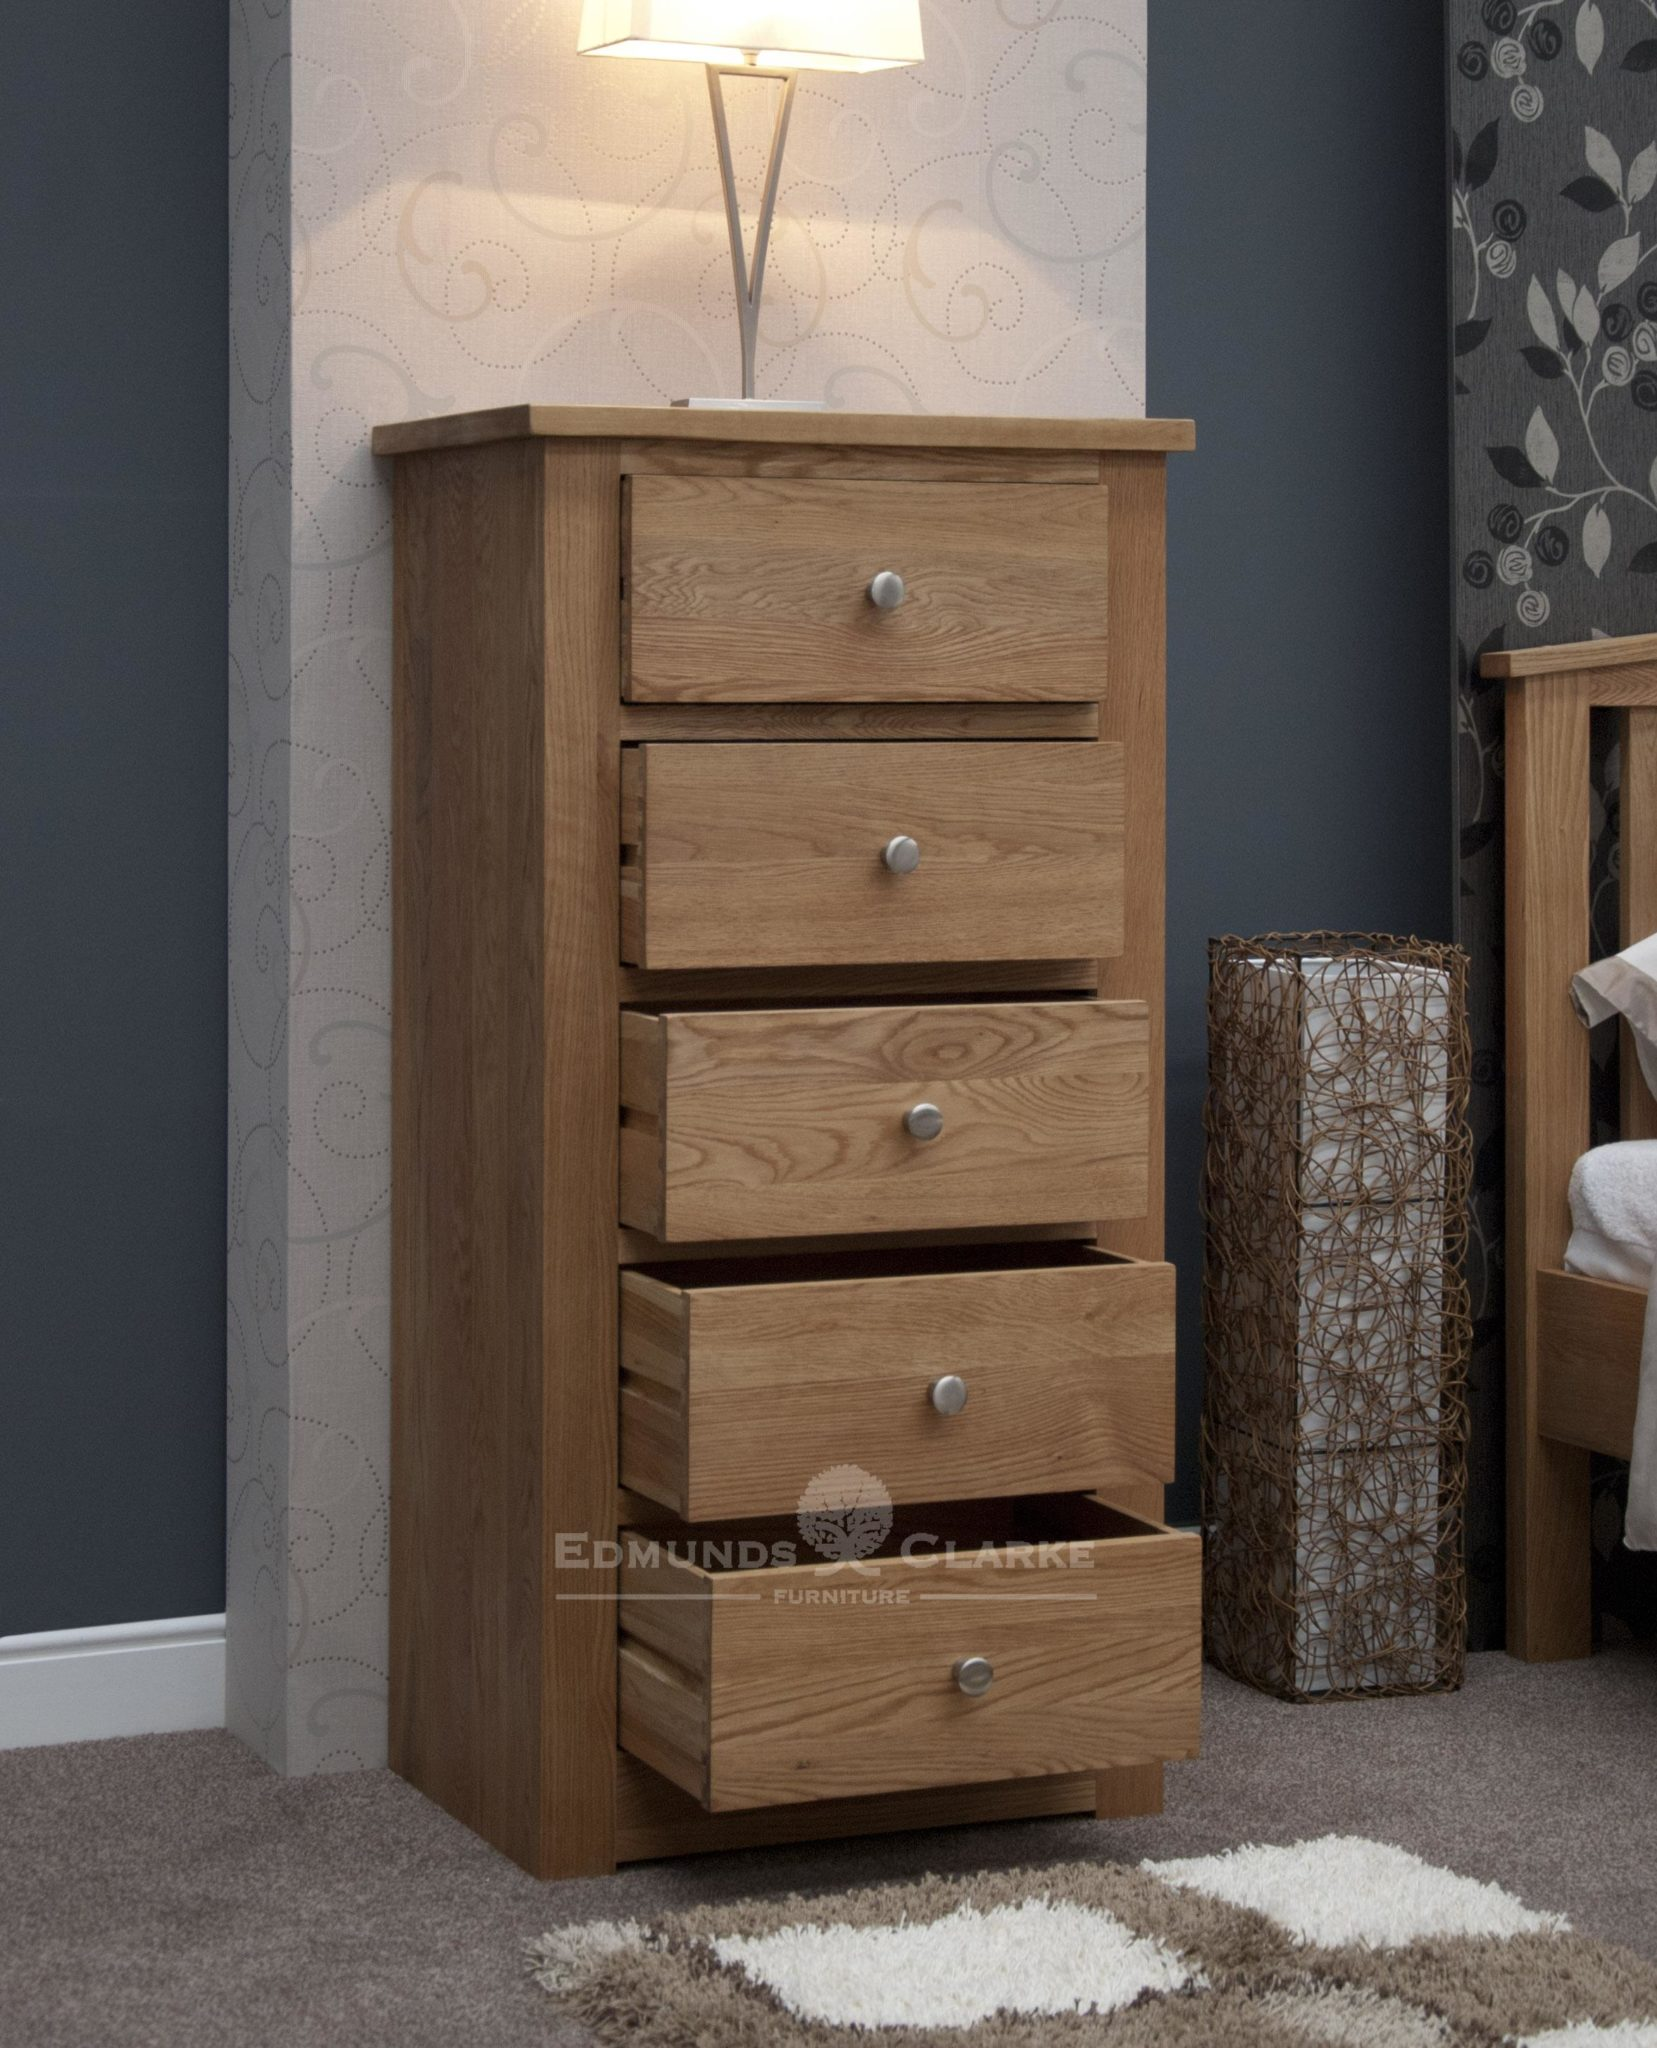 solid oak tall narrow five drawer chest, good sized drawers with chrome tapered knobs